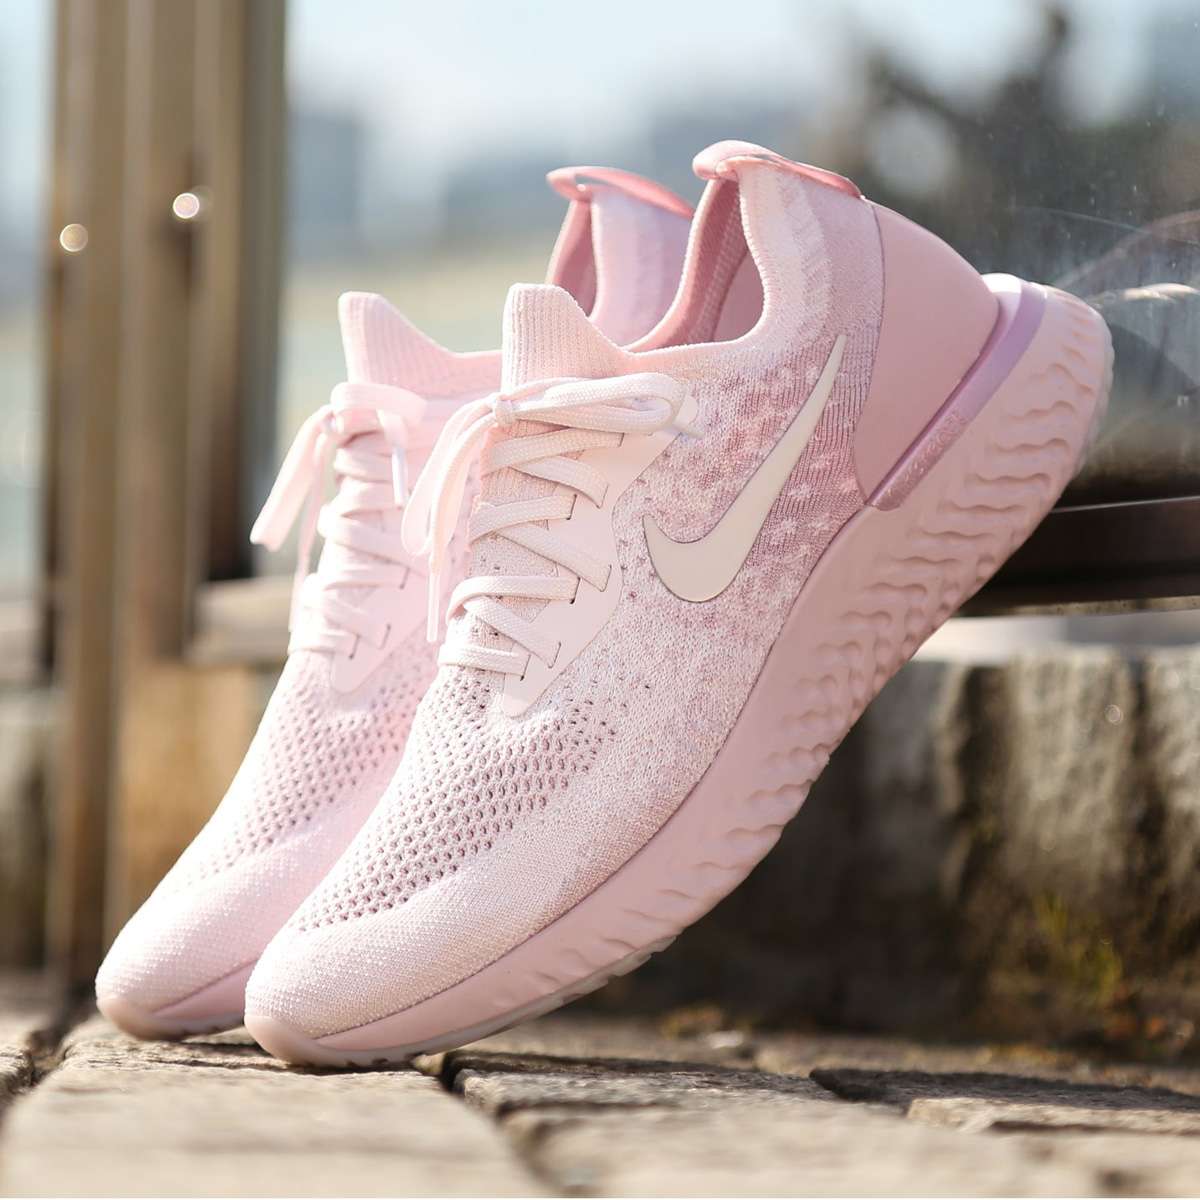 34cb0fcf5528 cheap nike epic react flyknit kie ney pick re act fly knit pearl pink pearl  pink